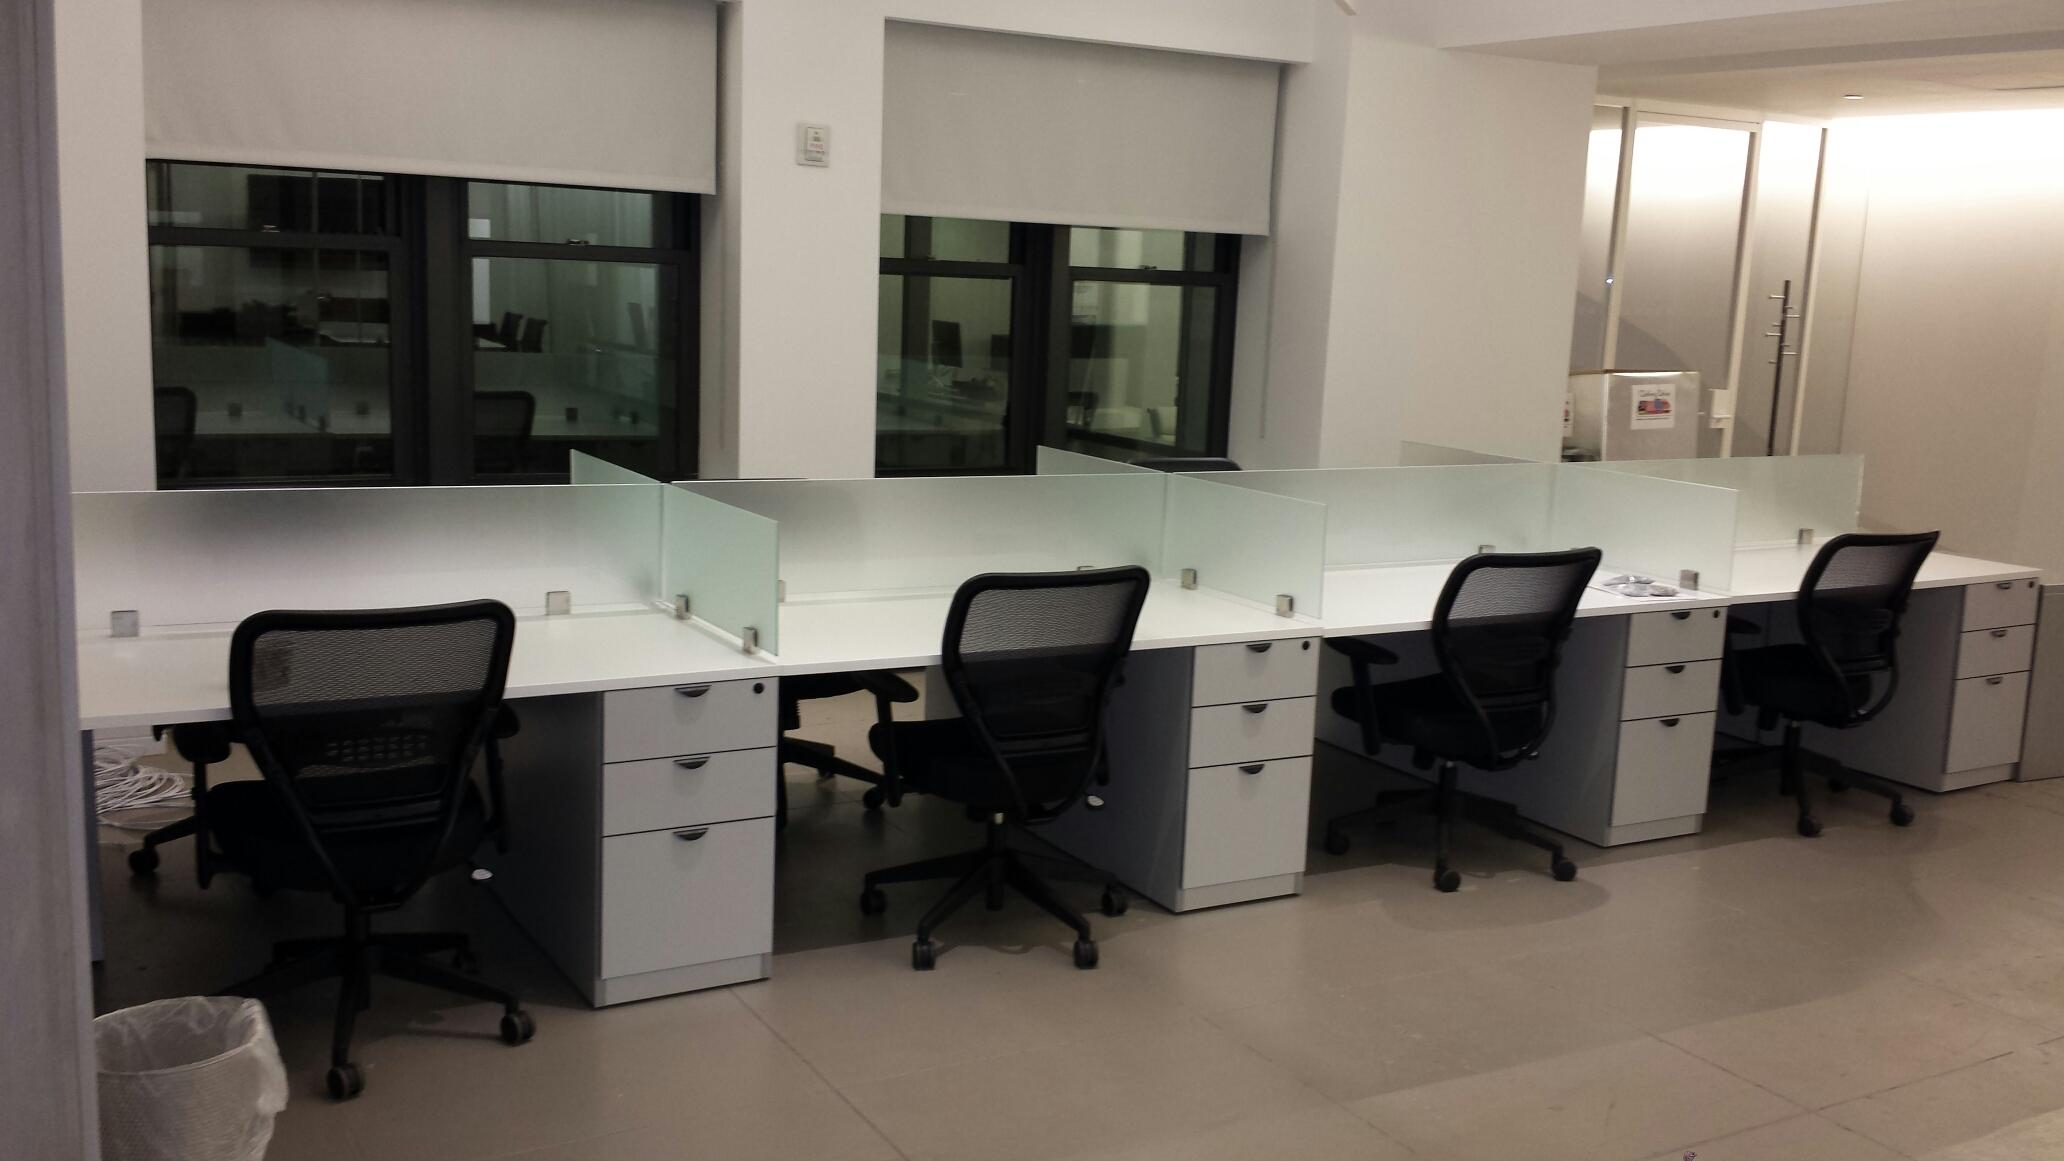 Knoll Benching Arenson Office Furnishings